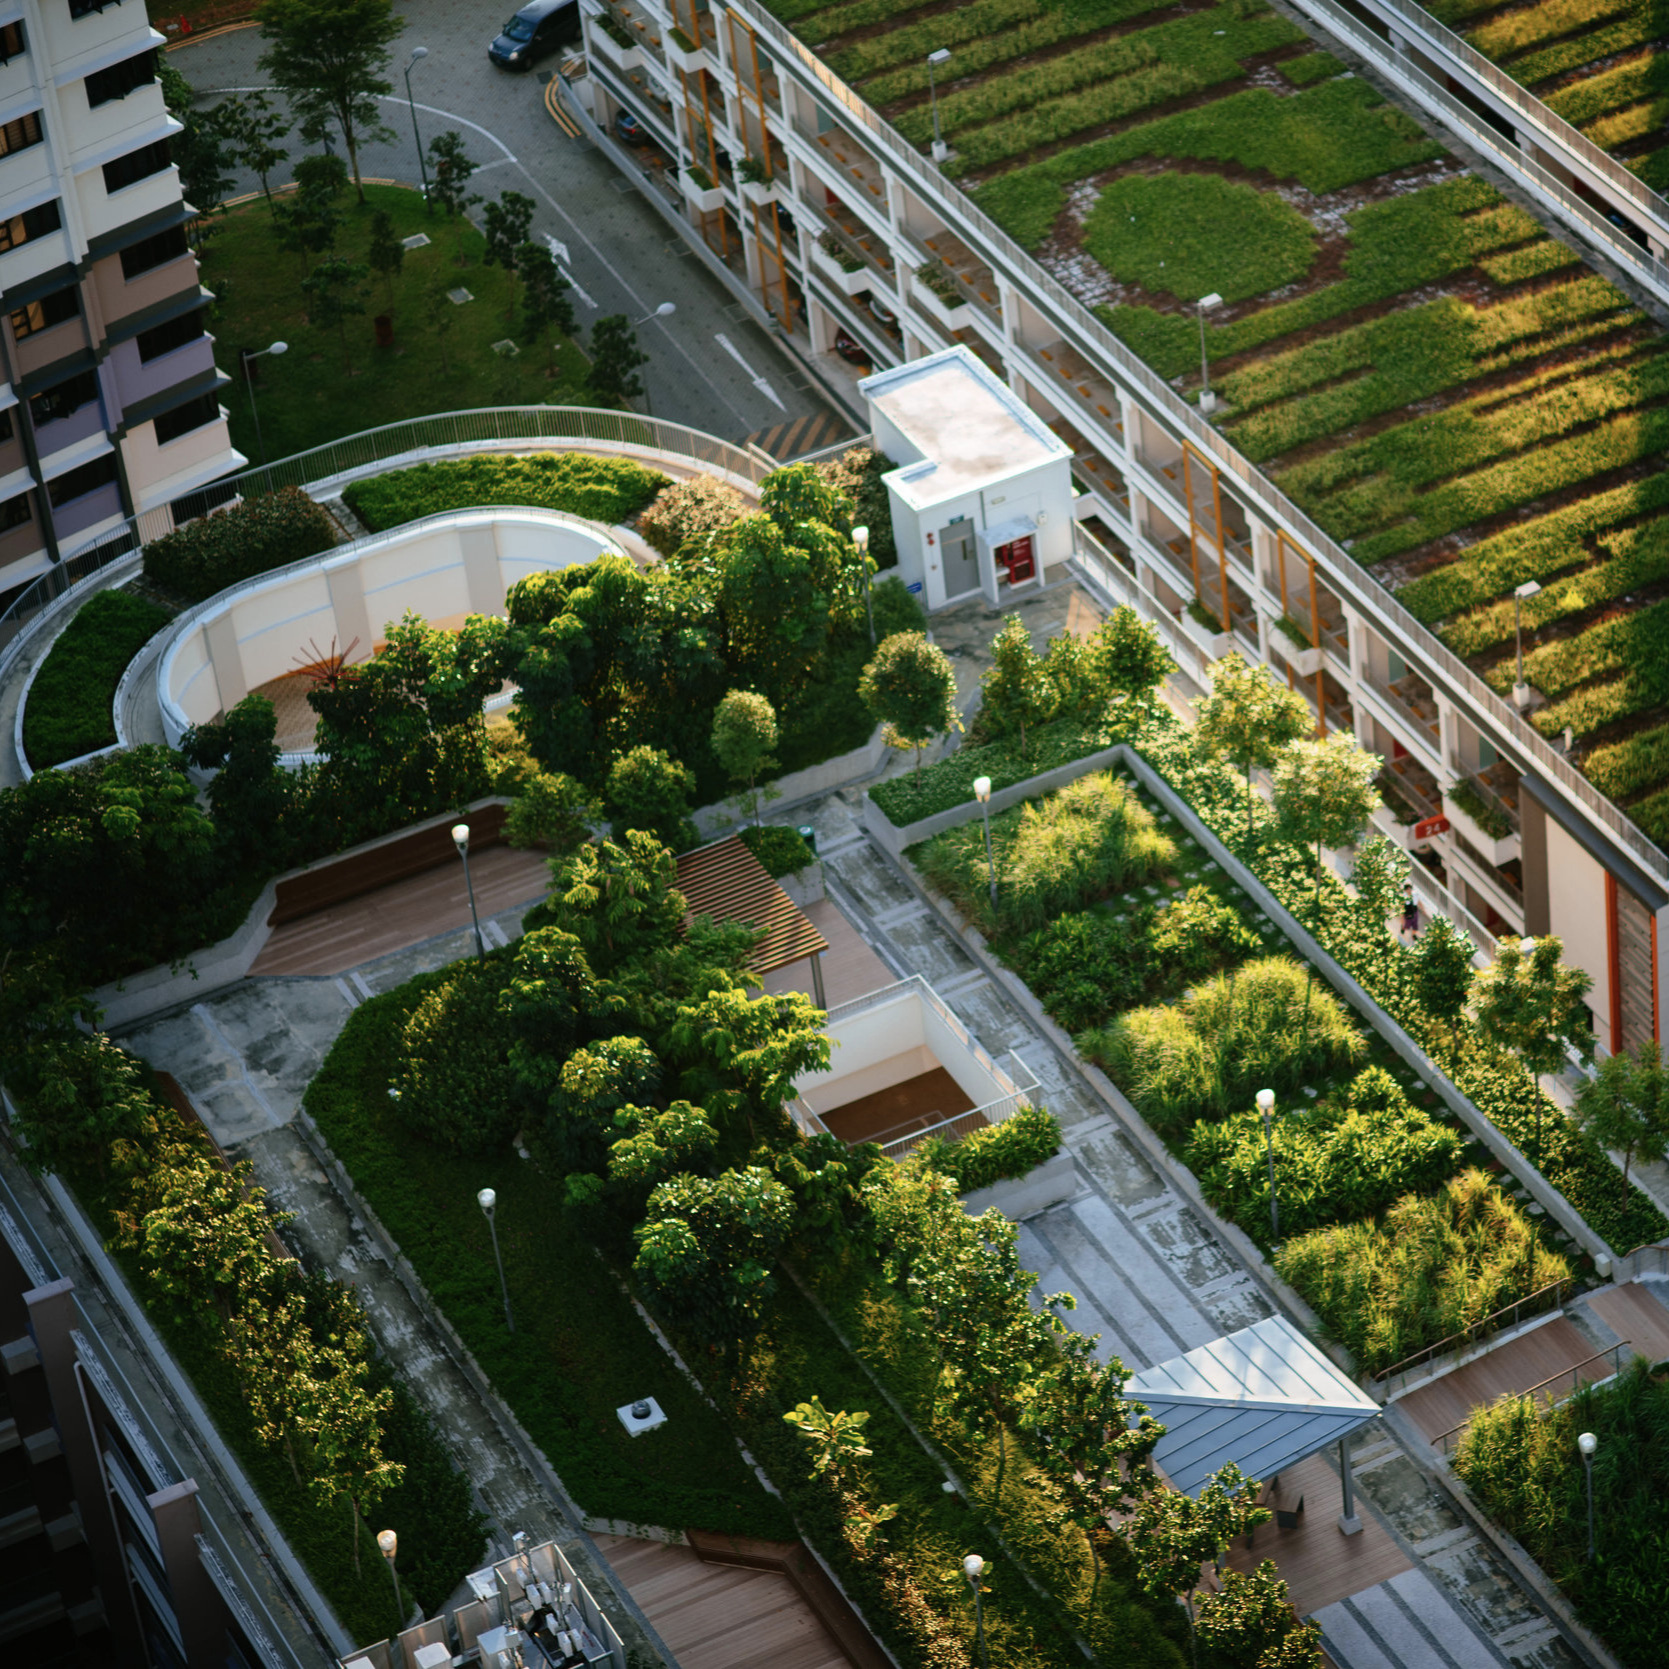 Urban Agriculture Has Provided Little Benefit - But this can change. Greener roofs might give us greener thumbs.